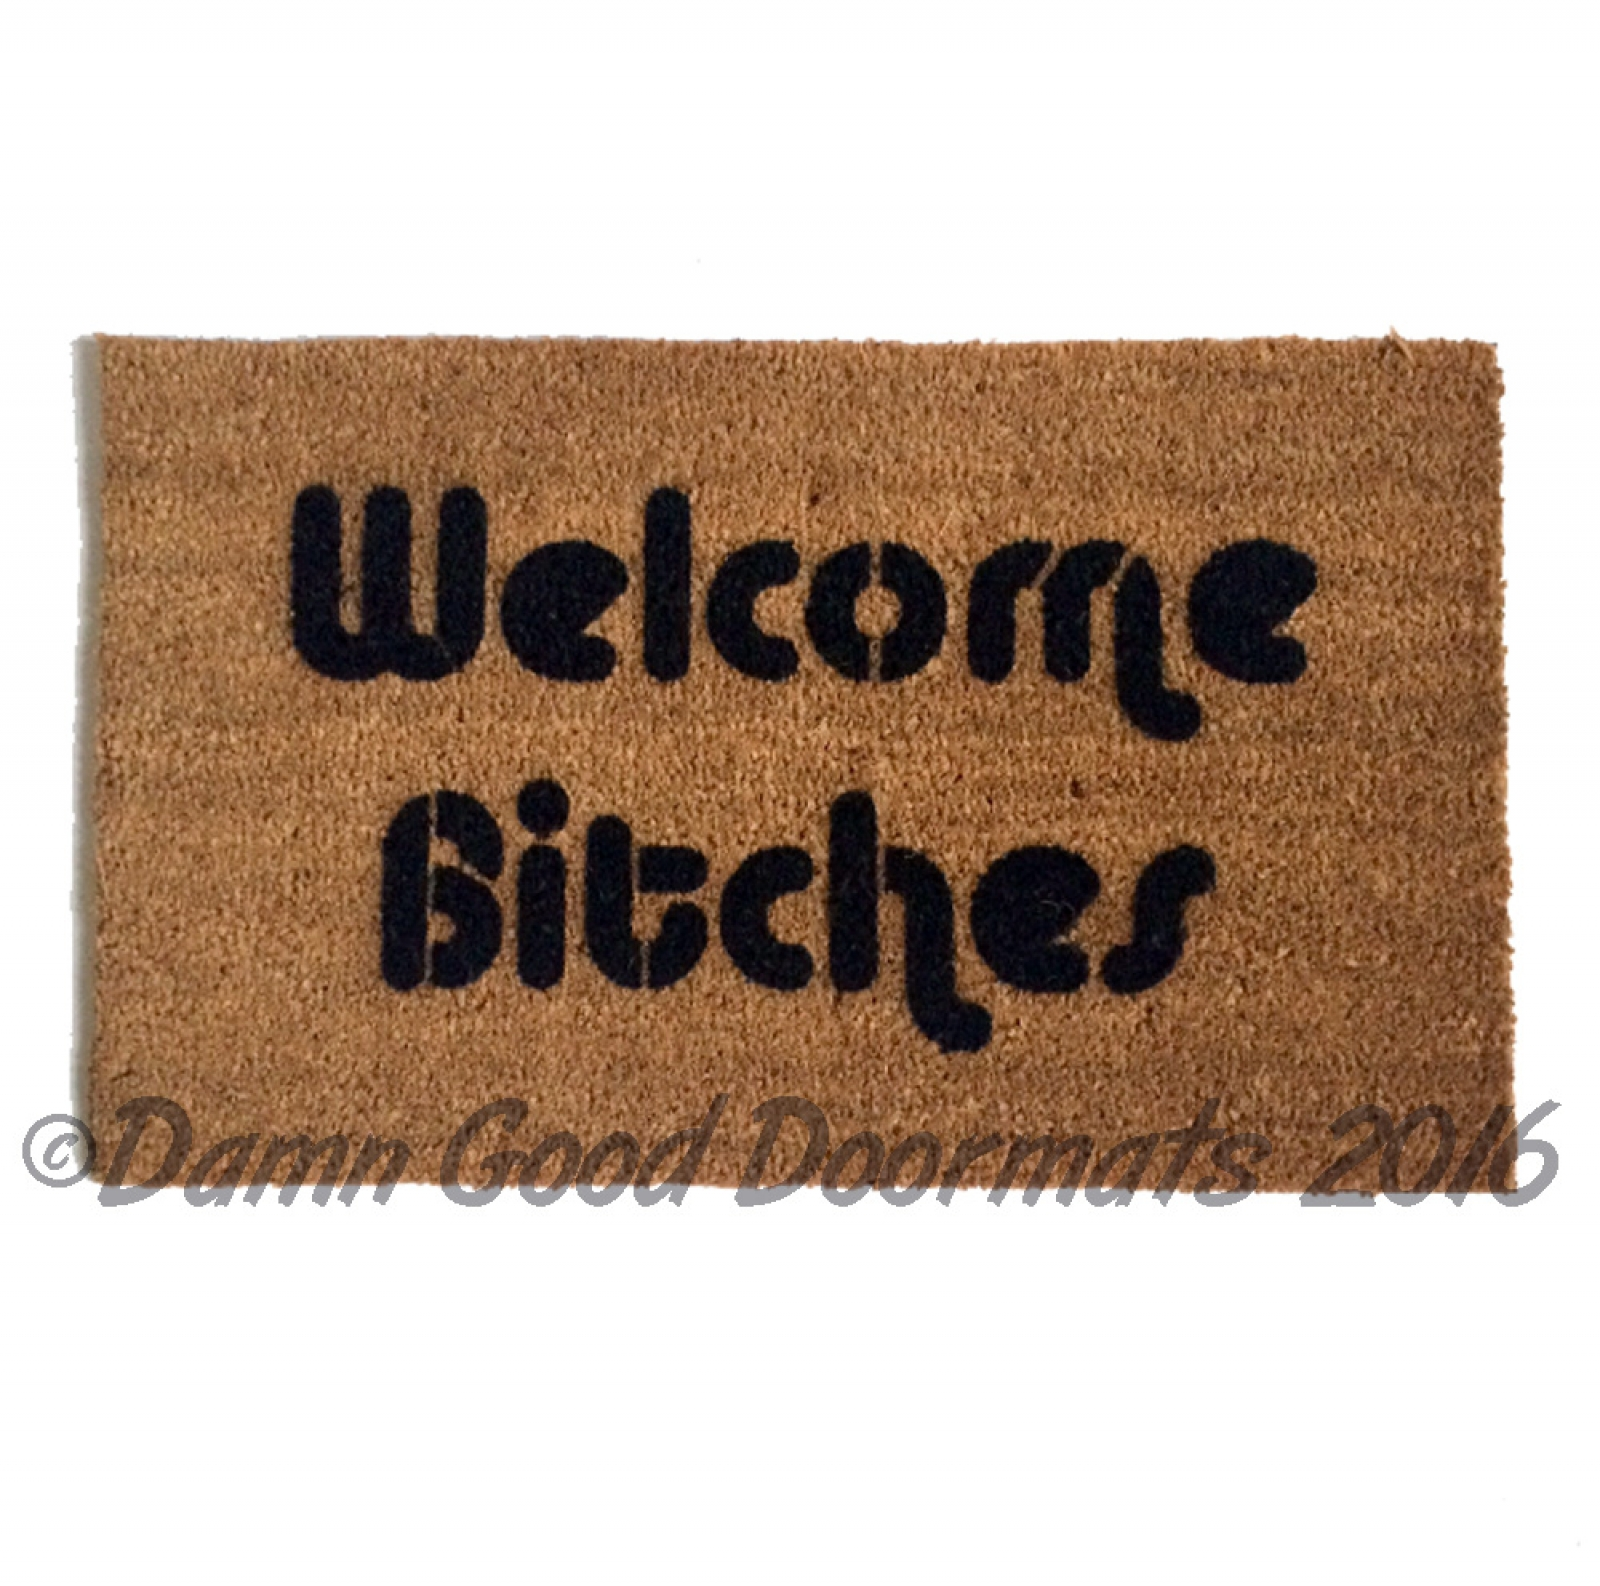 Doormat Funny Schadenfreude For Everyone Funny Pleasure Of Pain